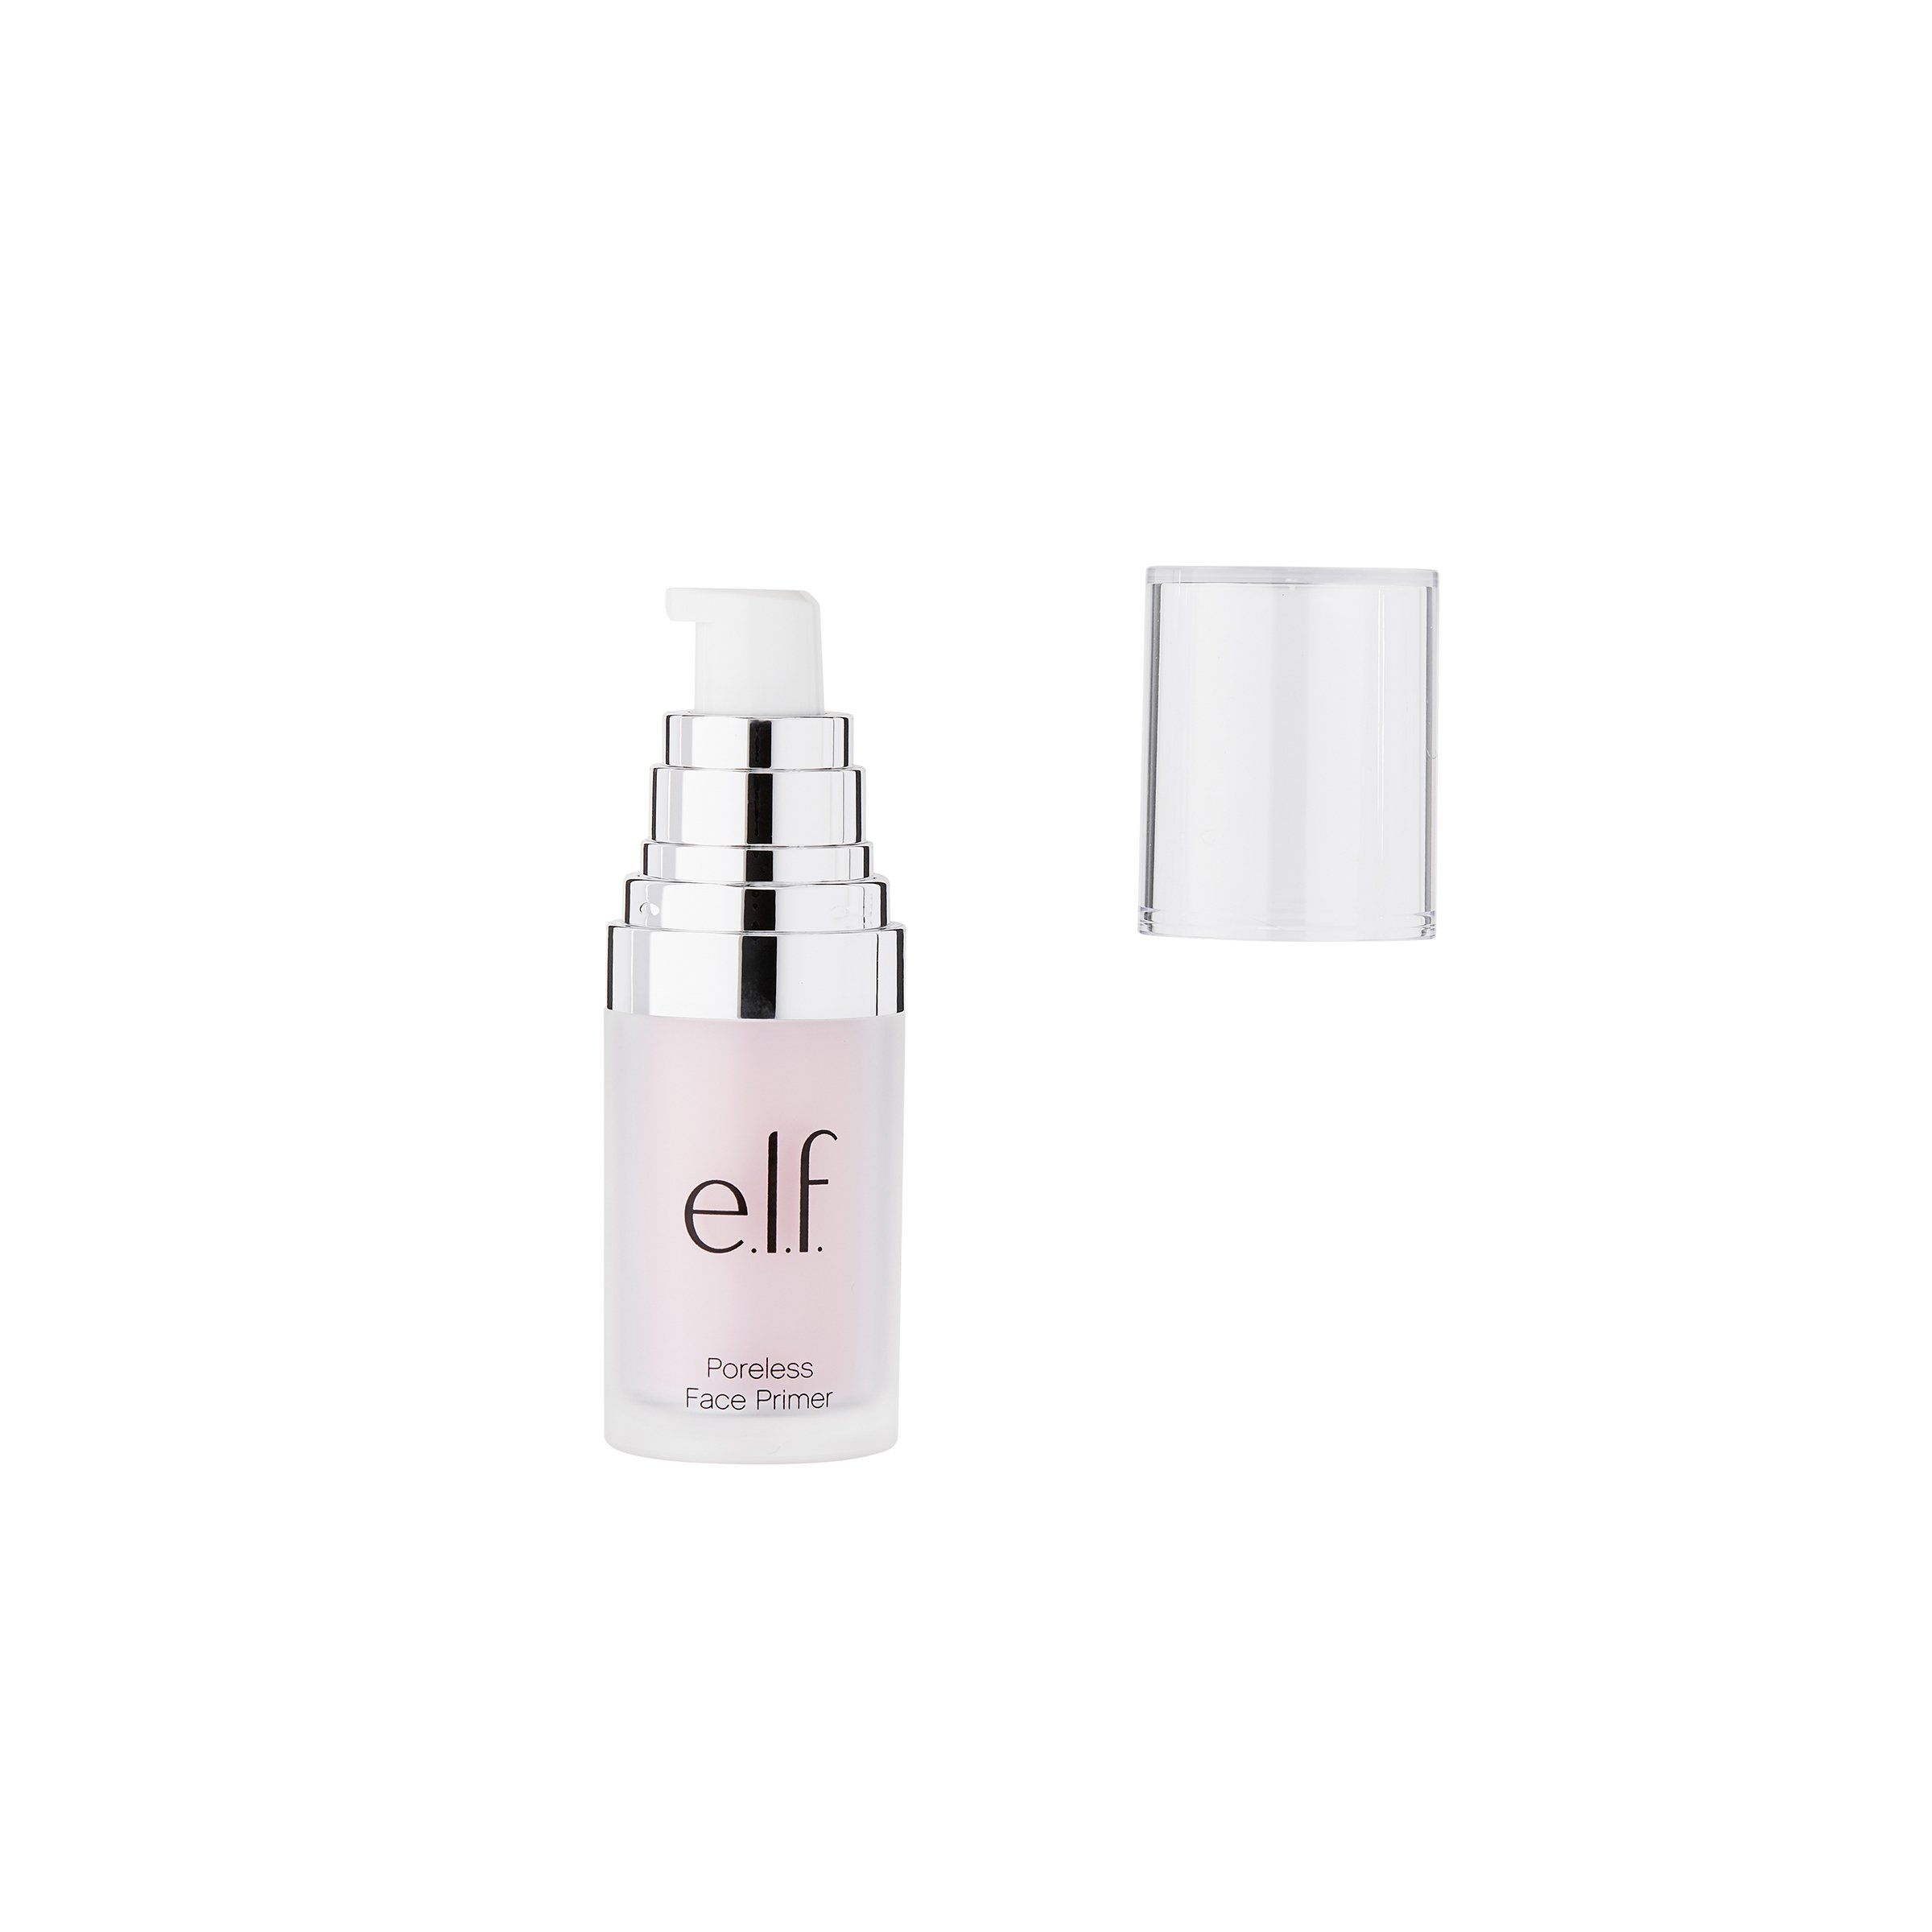 e.l.f. Poreless Face Primer for use as a Foundation for Your Makeup, Reduces the Appearance of Pores, .47 Ounces